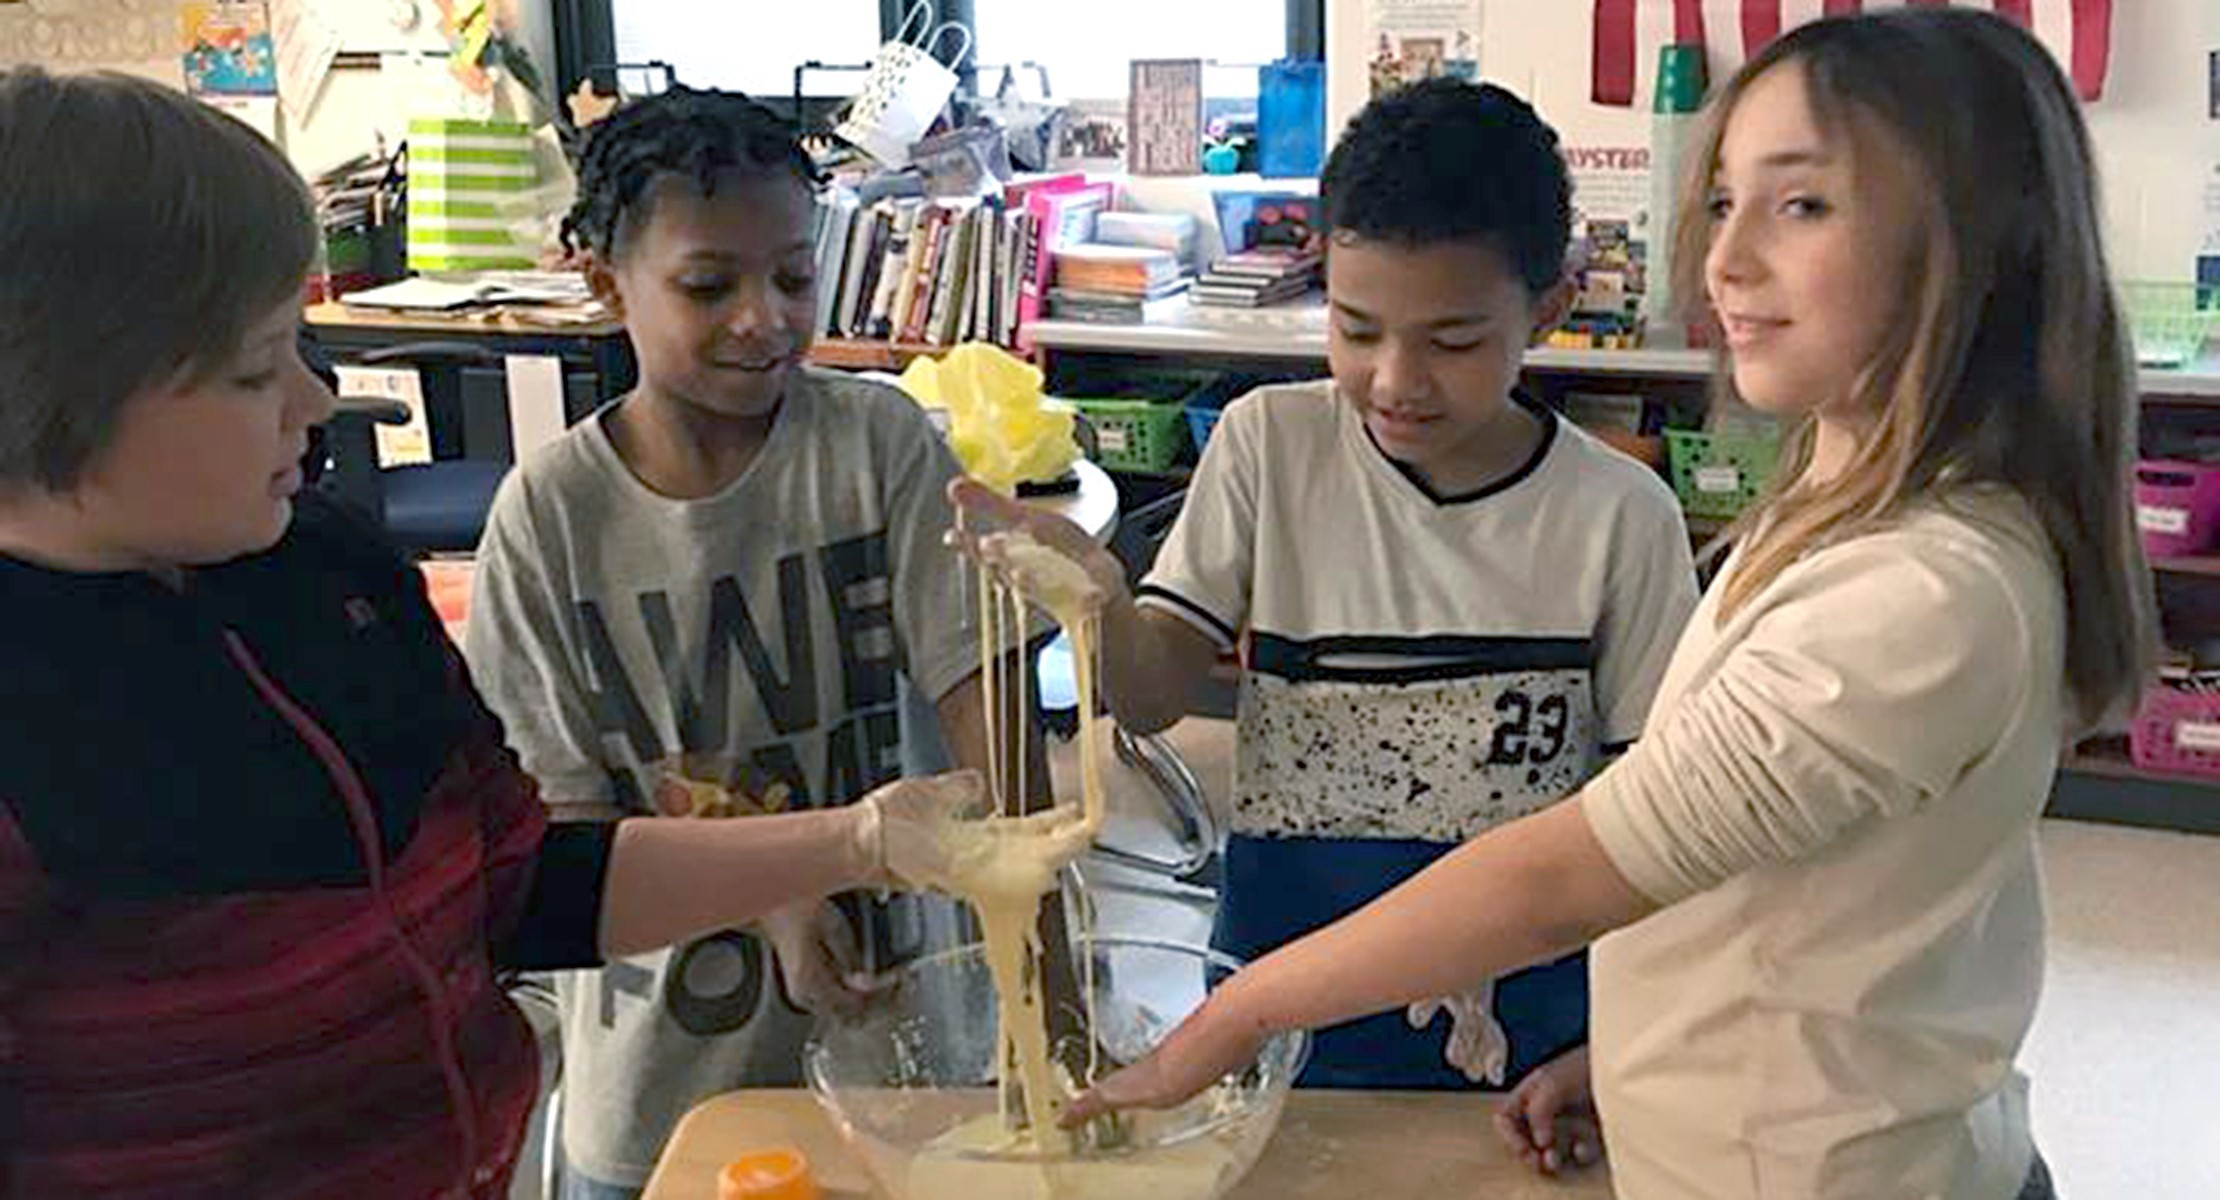 Kids mixing ingredients in a mixing bowl